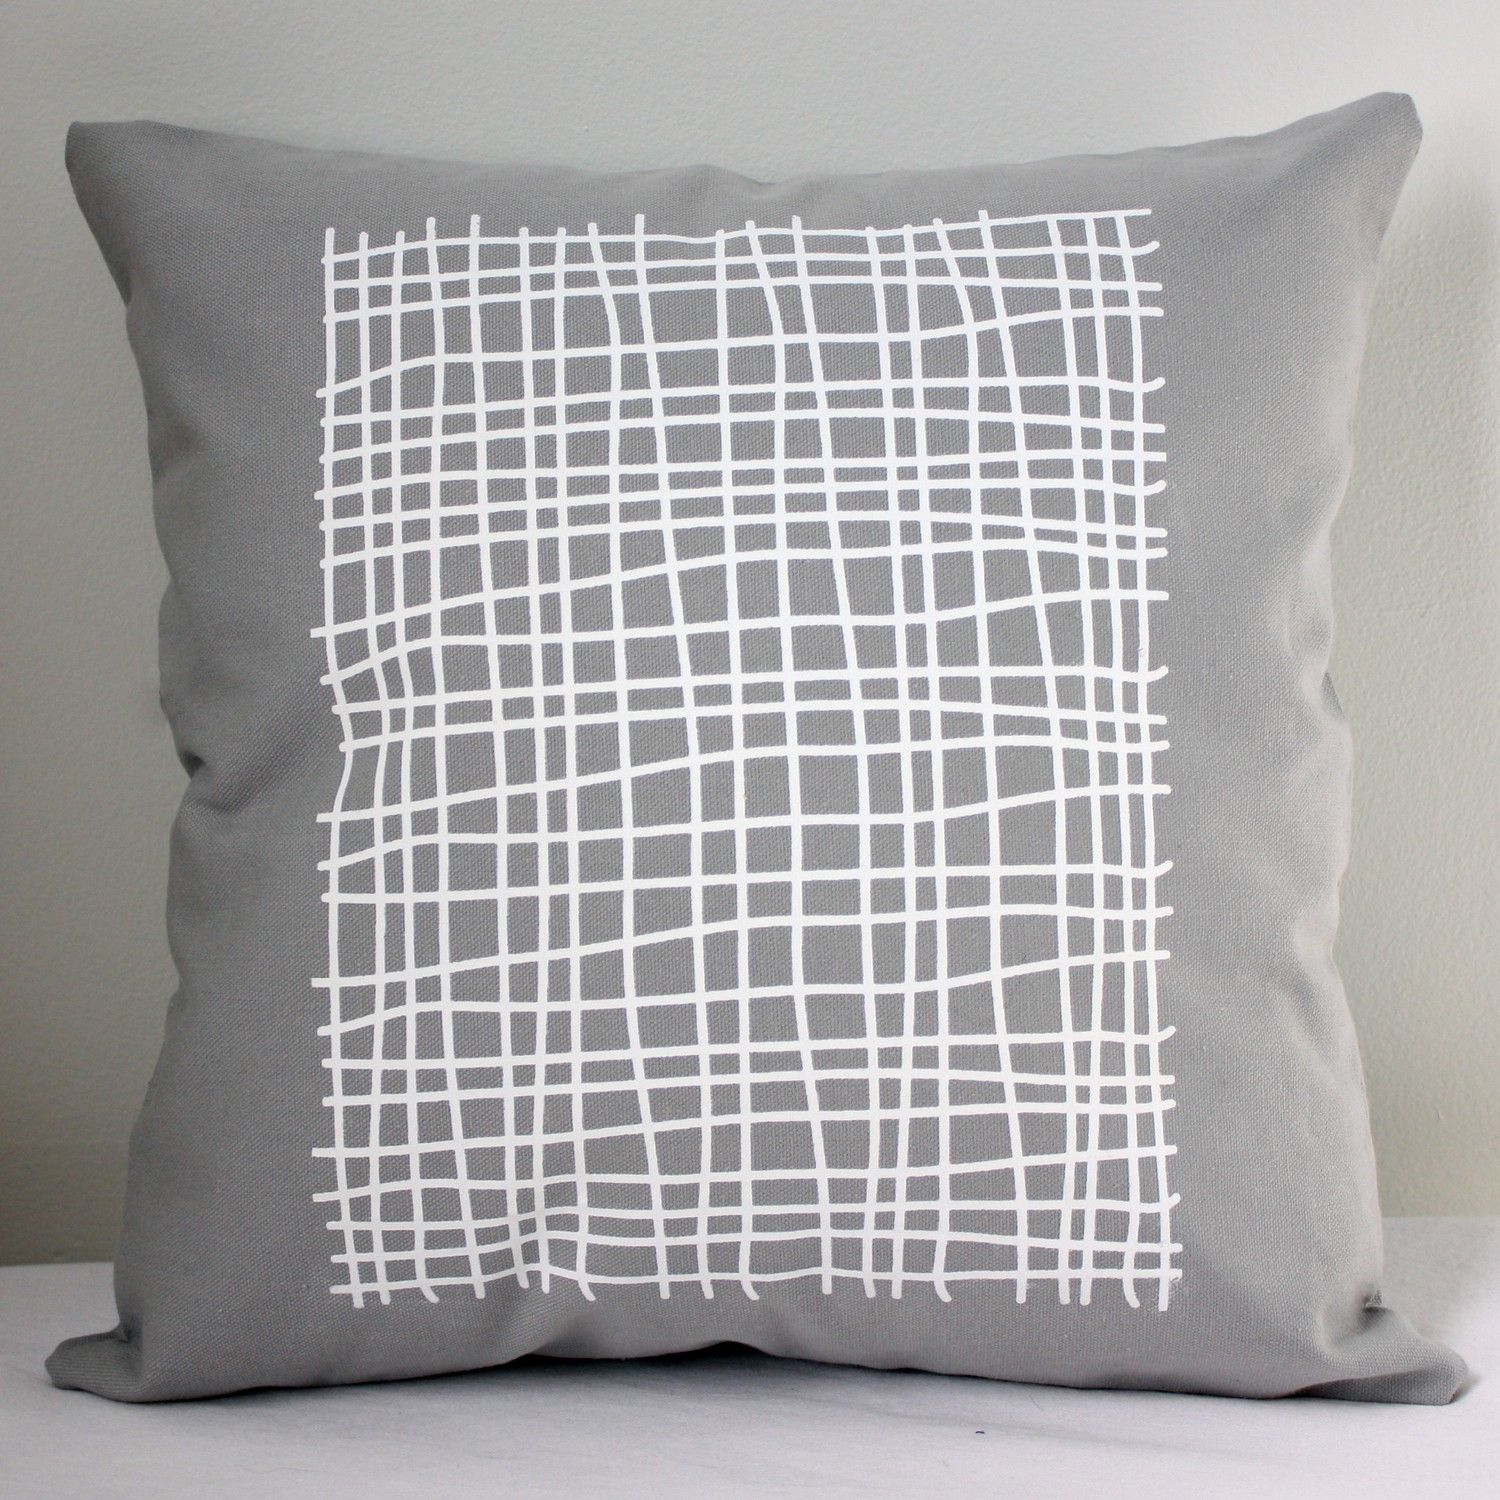 in square throw pillow light gray with grid print in white